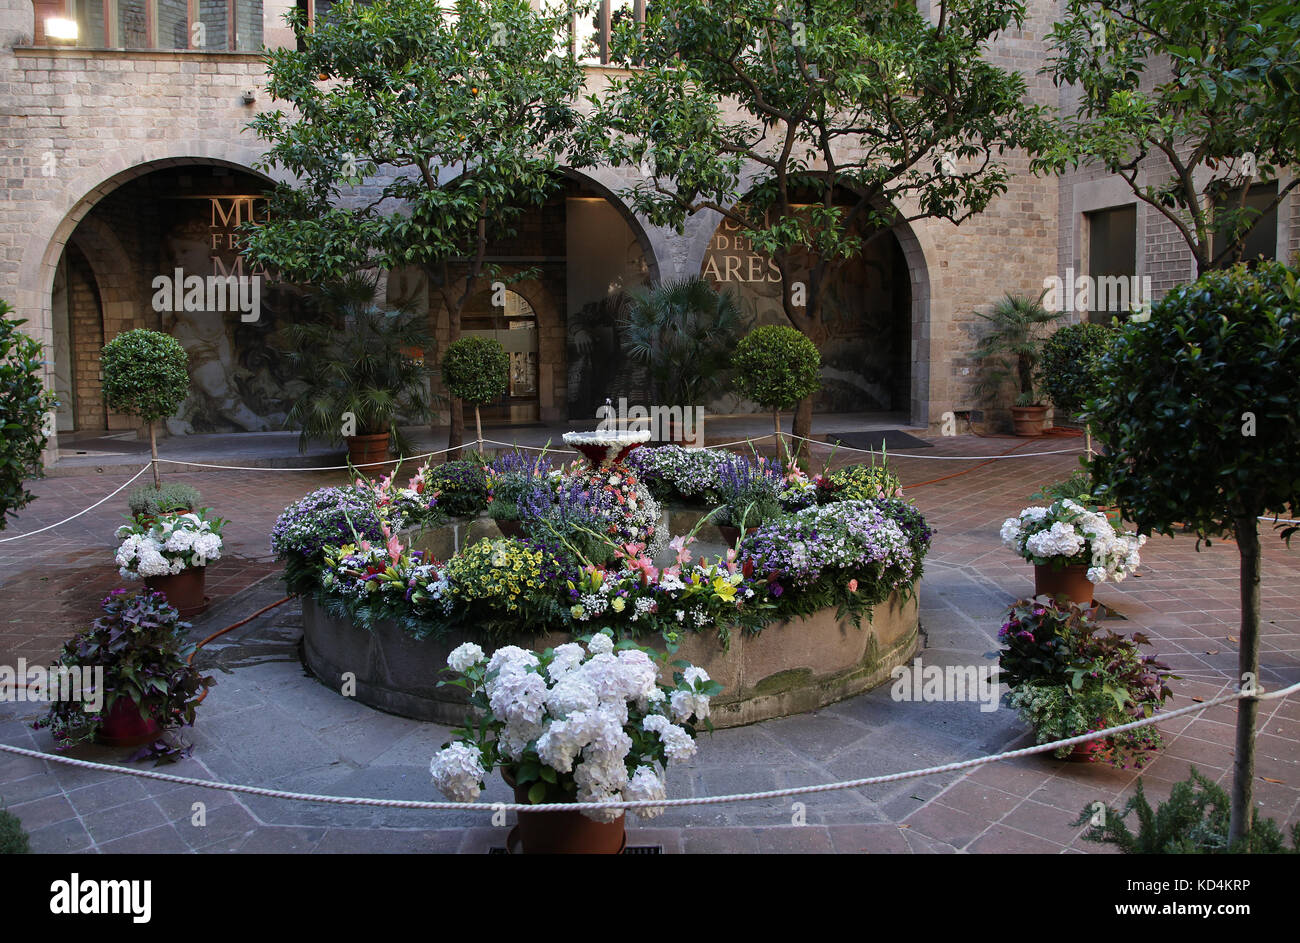 The Museu Frederic Marès located in the heart of Barcelona's Gothic Quarter Barcelona Catalunia Spain - Stock Image